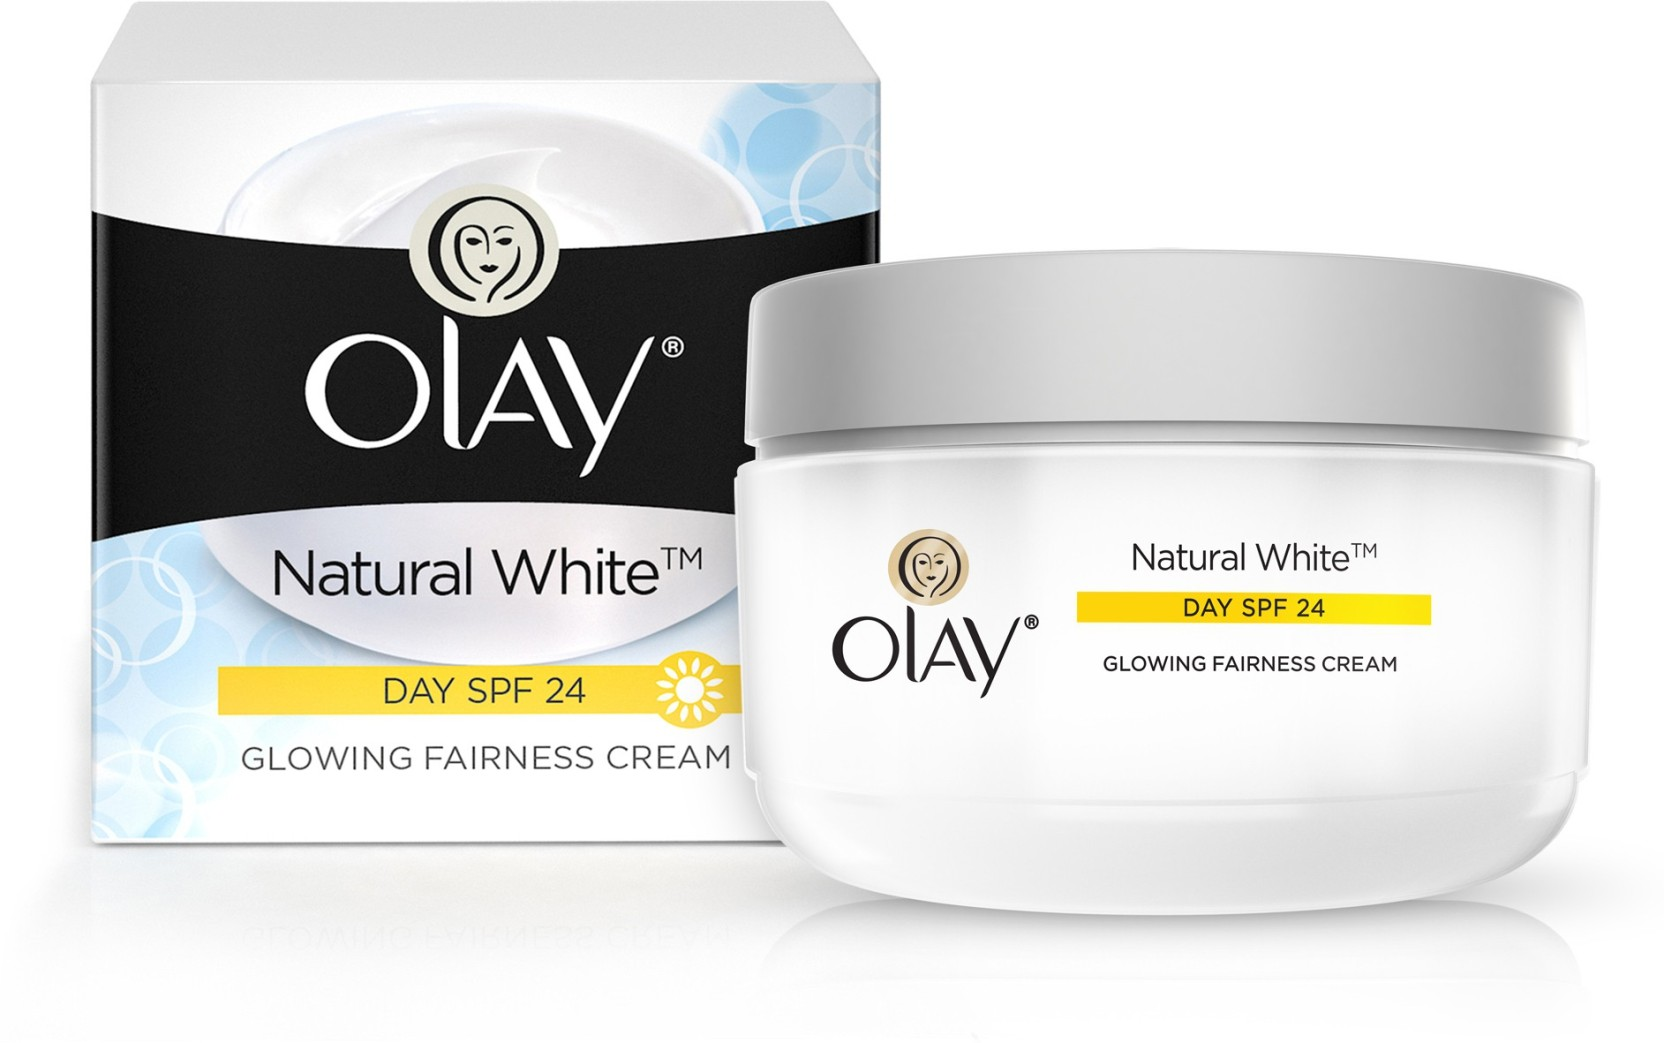 Olay Natural White Glowing Fairness Cream Day Spf 24 Price In Total Effects Normal 15 8g Add To Cart